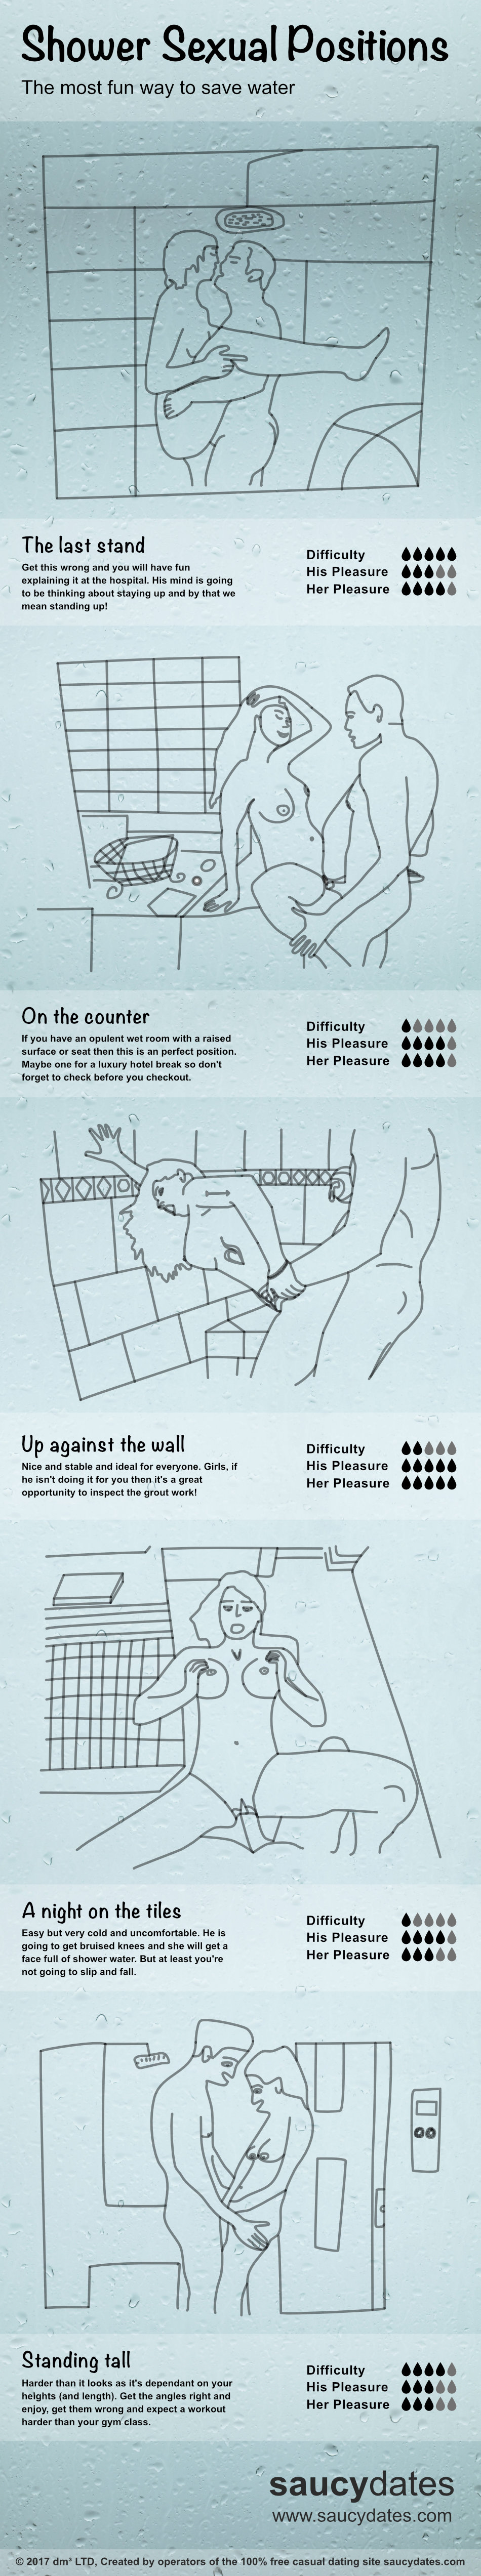 Shower sex positions infographic